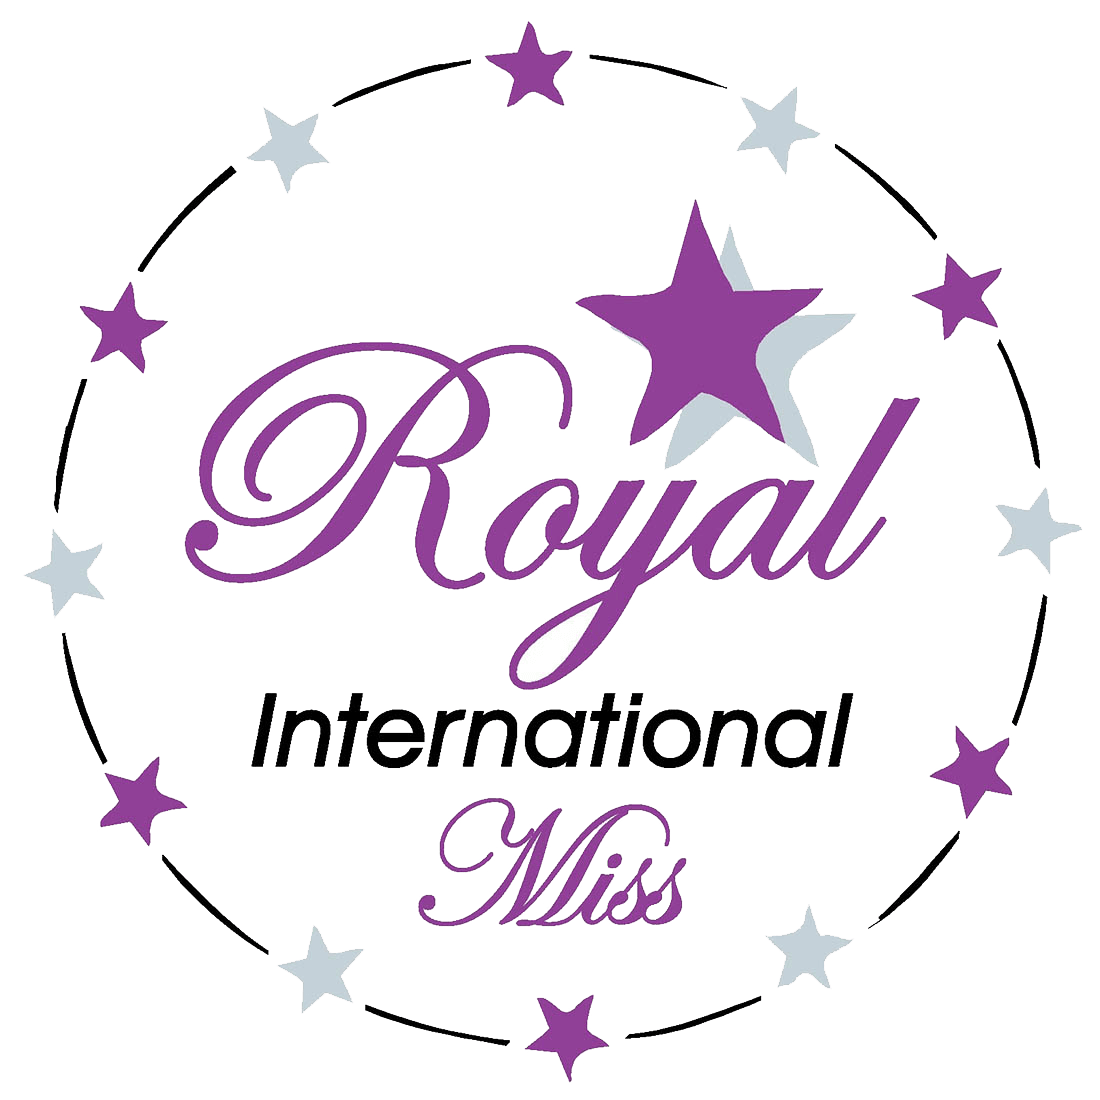 royal international miss logo black